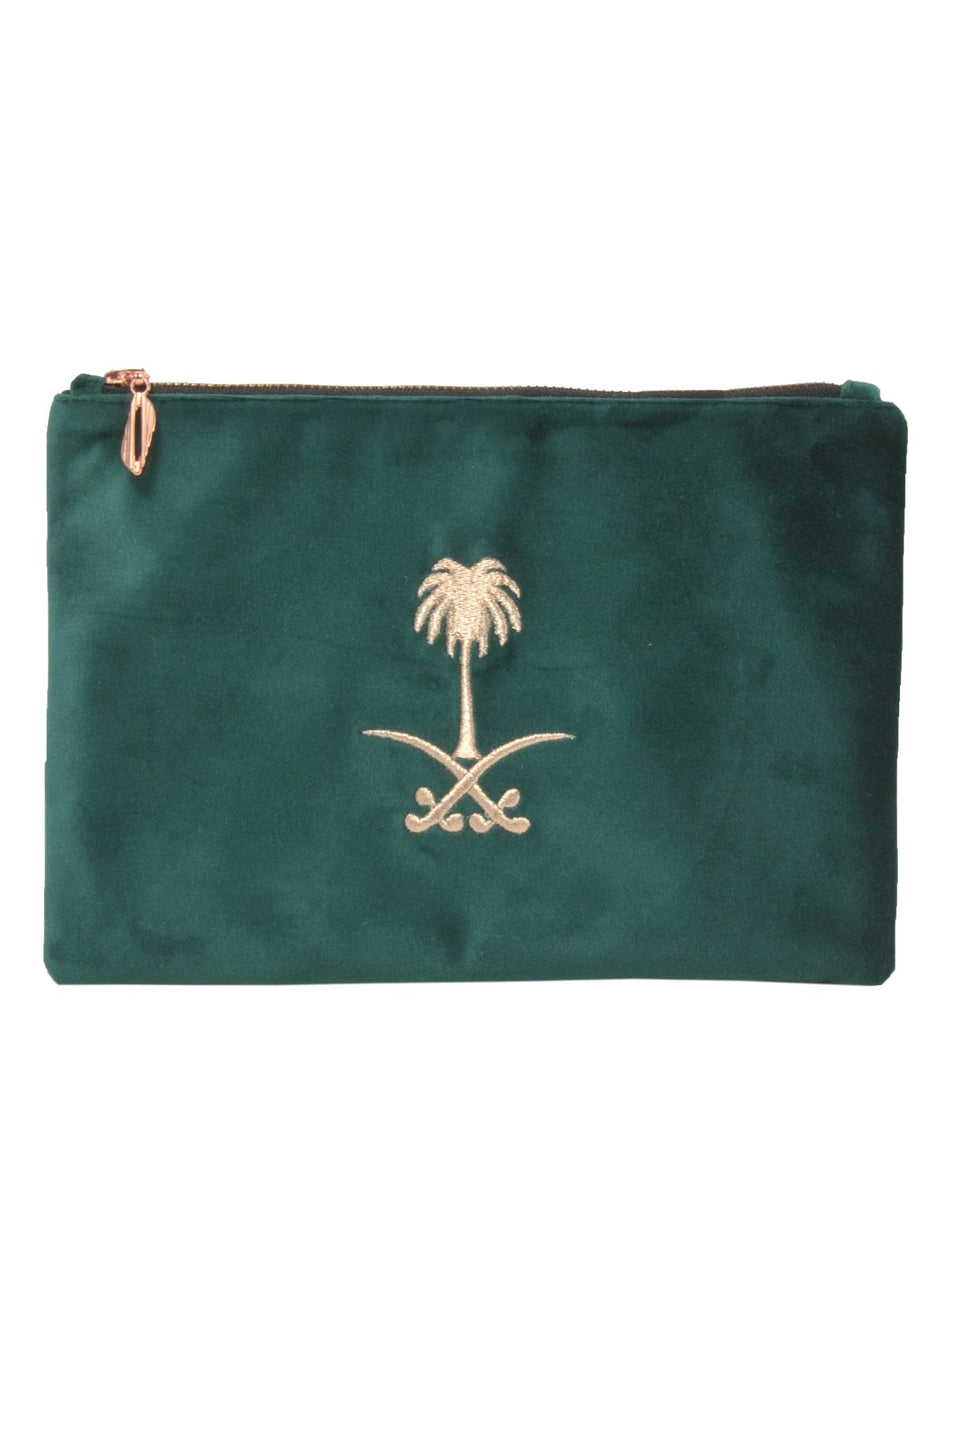 POUCH SAUDI FLAG LOGO - MINE BAGS AND ACCESSORIES - MIRA Y MANO